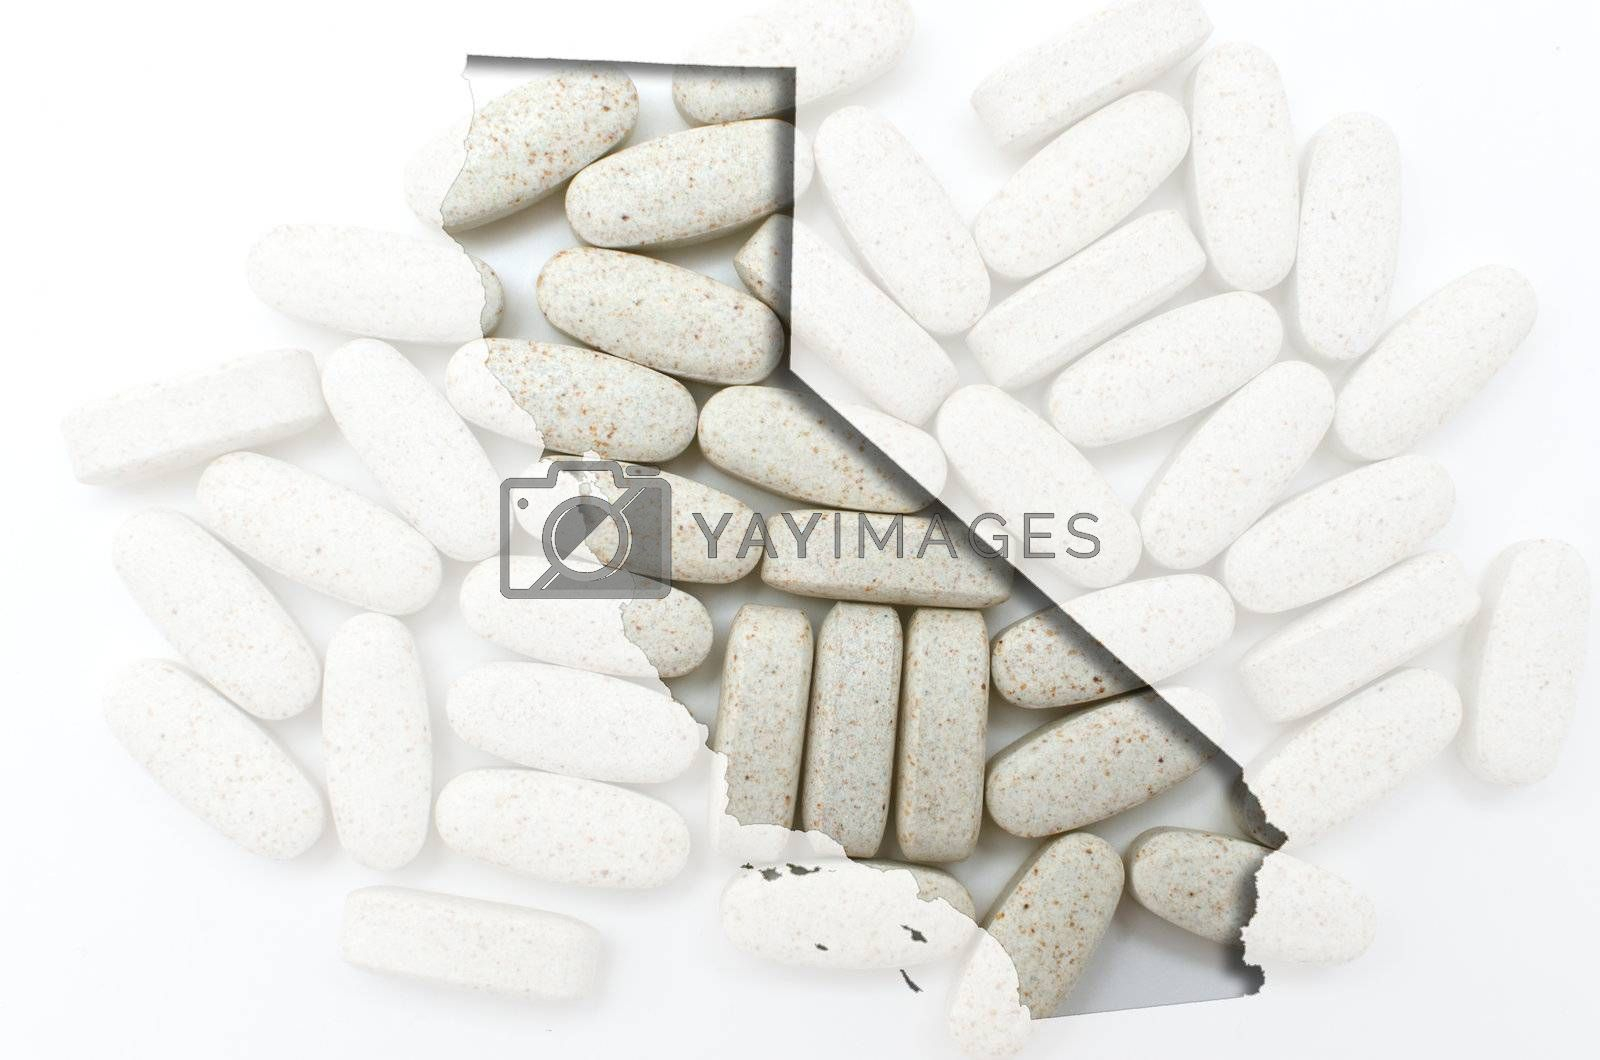 Outlined california map with transparent background of capsules